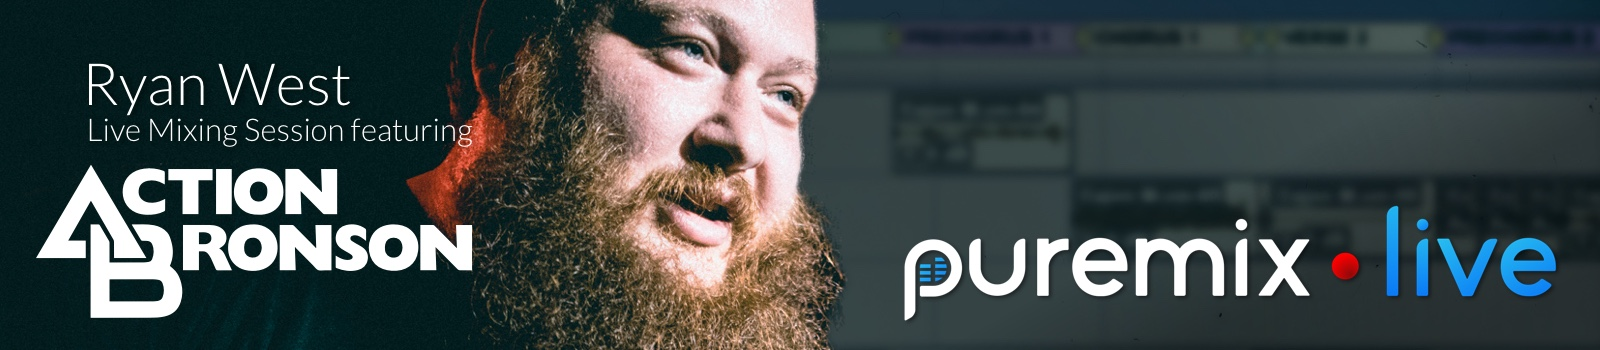 PRO MEMBERS ONLY - Ryan West Mixing Action Bronson on pureMix.Live